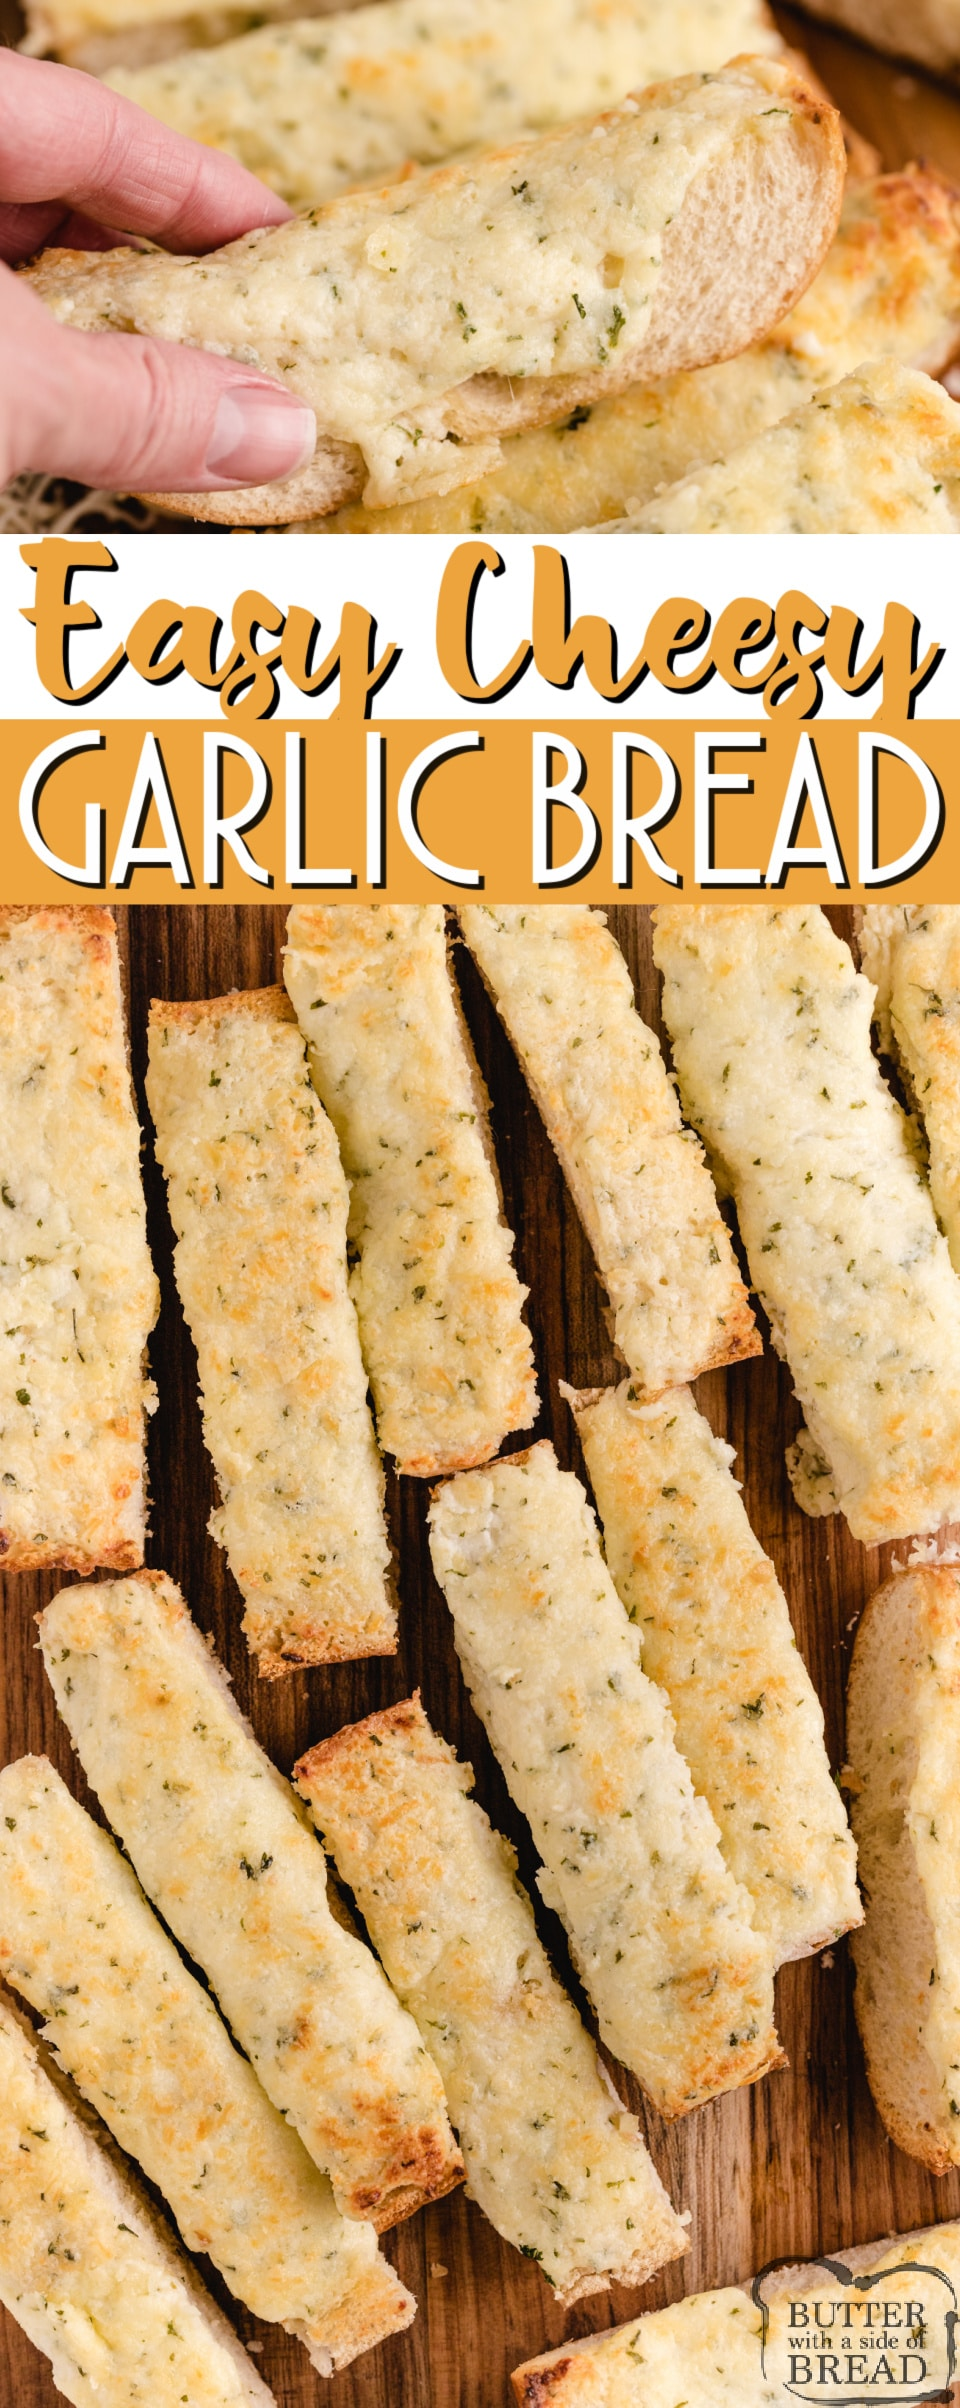 Easy Cheesy Garlic Bread is loaded with butter, cream cheese, garlic, parsley and mozzarella- it's the perfect side dish for every Italian meal! Perfectly seasoned and loaded with cheese, this garlic bread recipe can be made and served in under 10 minutes!